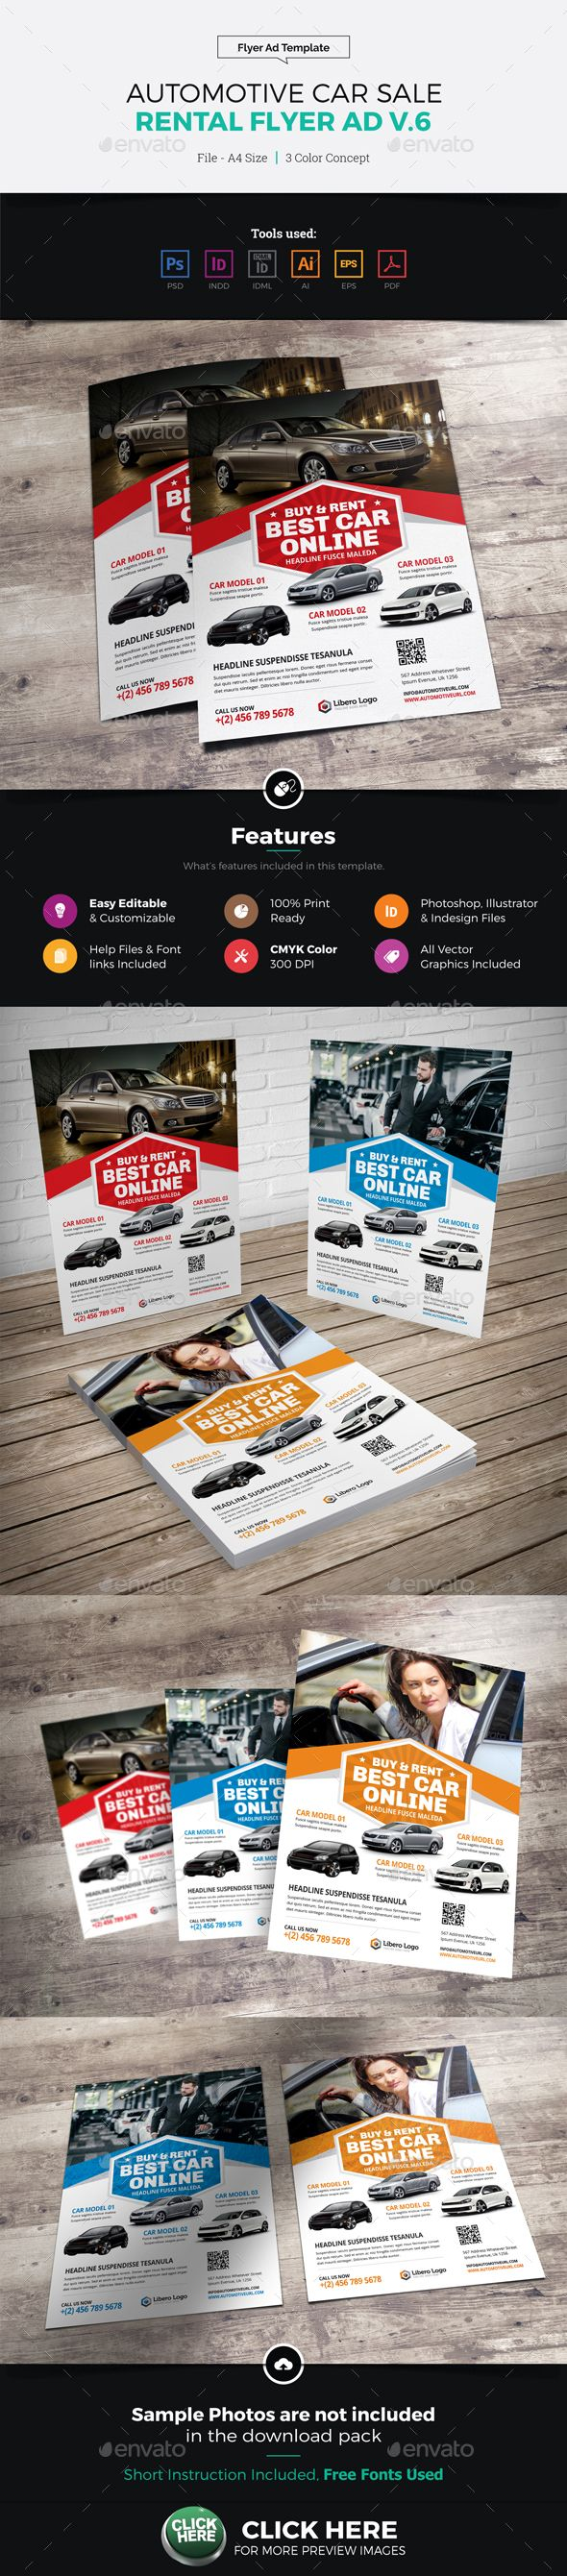 Car For Sale Flyer Automotive Car Sale Rental Flyer Ad V6  Flyer Templates  Pinterest .